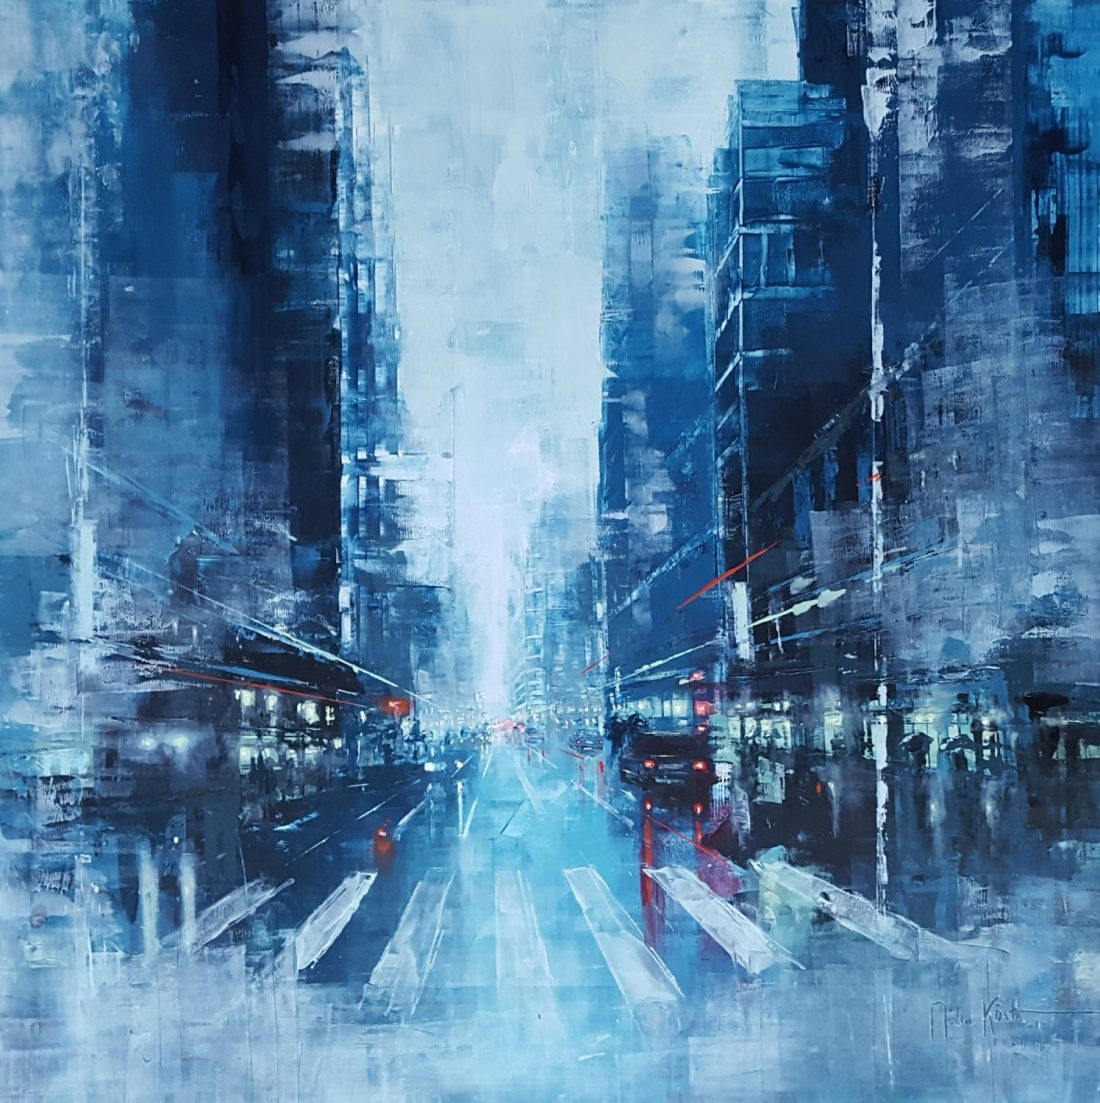 Martin Köster, New York City blue afternoon VII, Oil on panel, Unikat, 2019, 100 x 100 cm